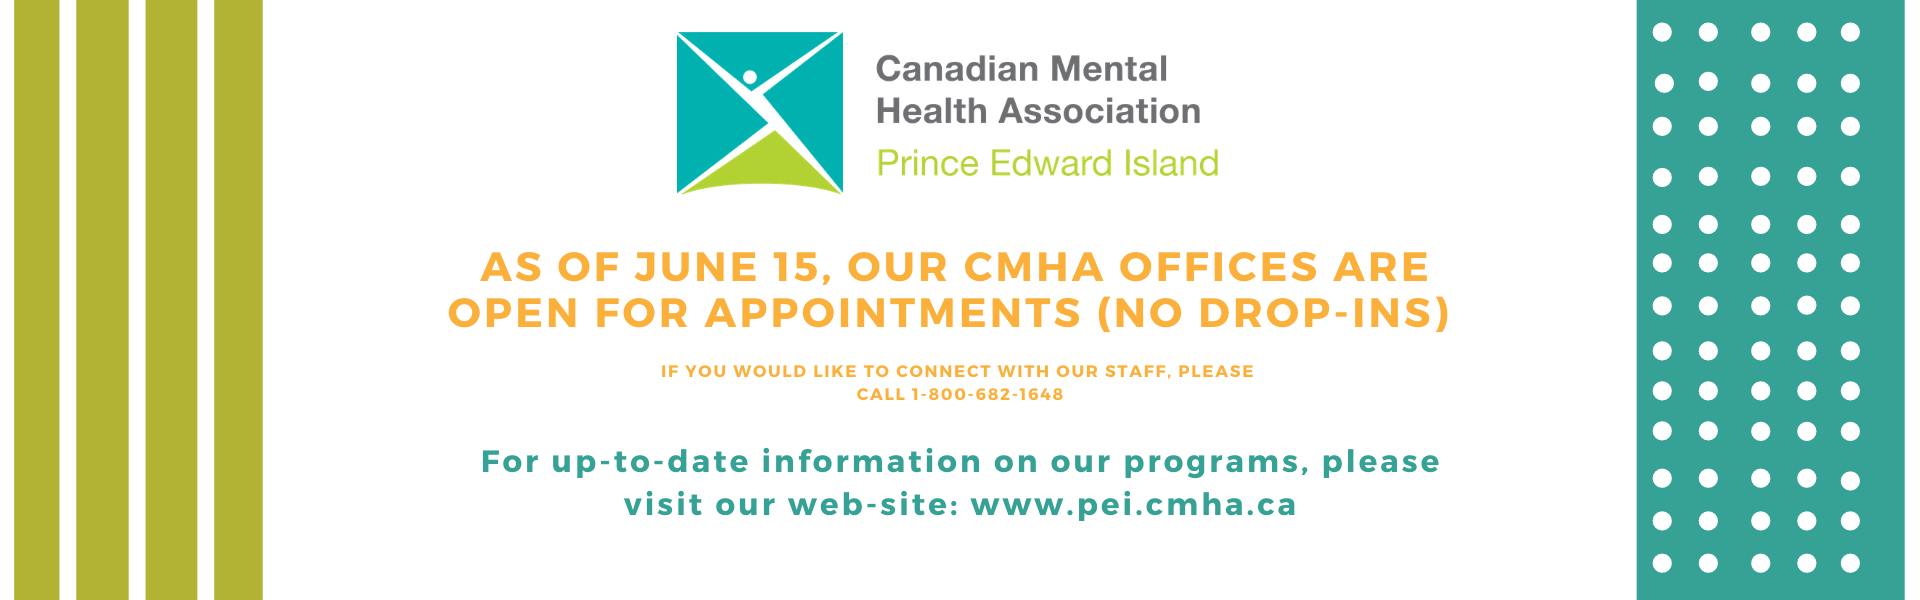 CMHA is now open for appointments